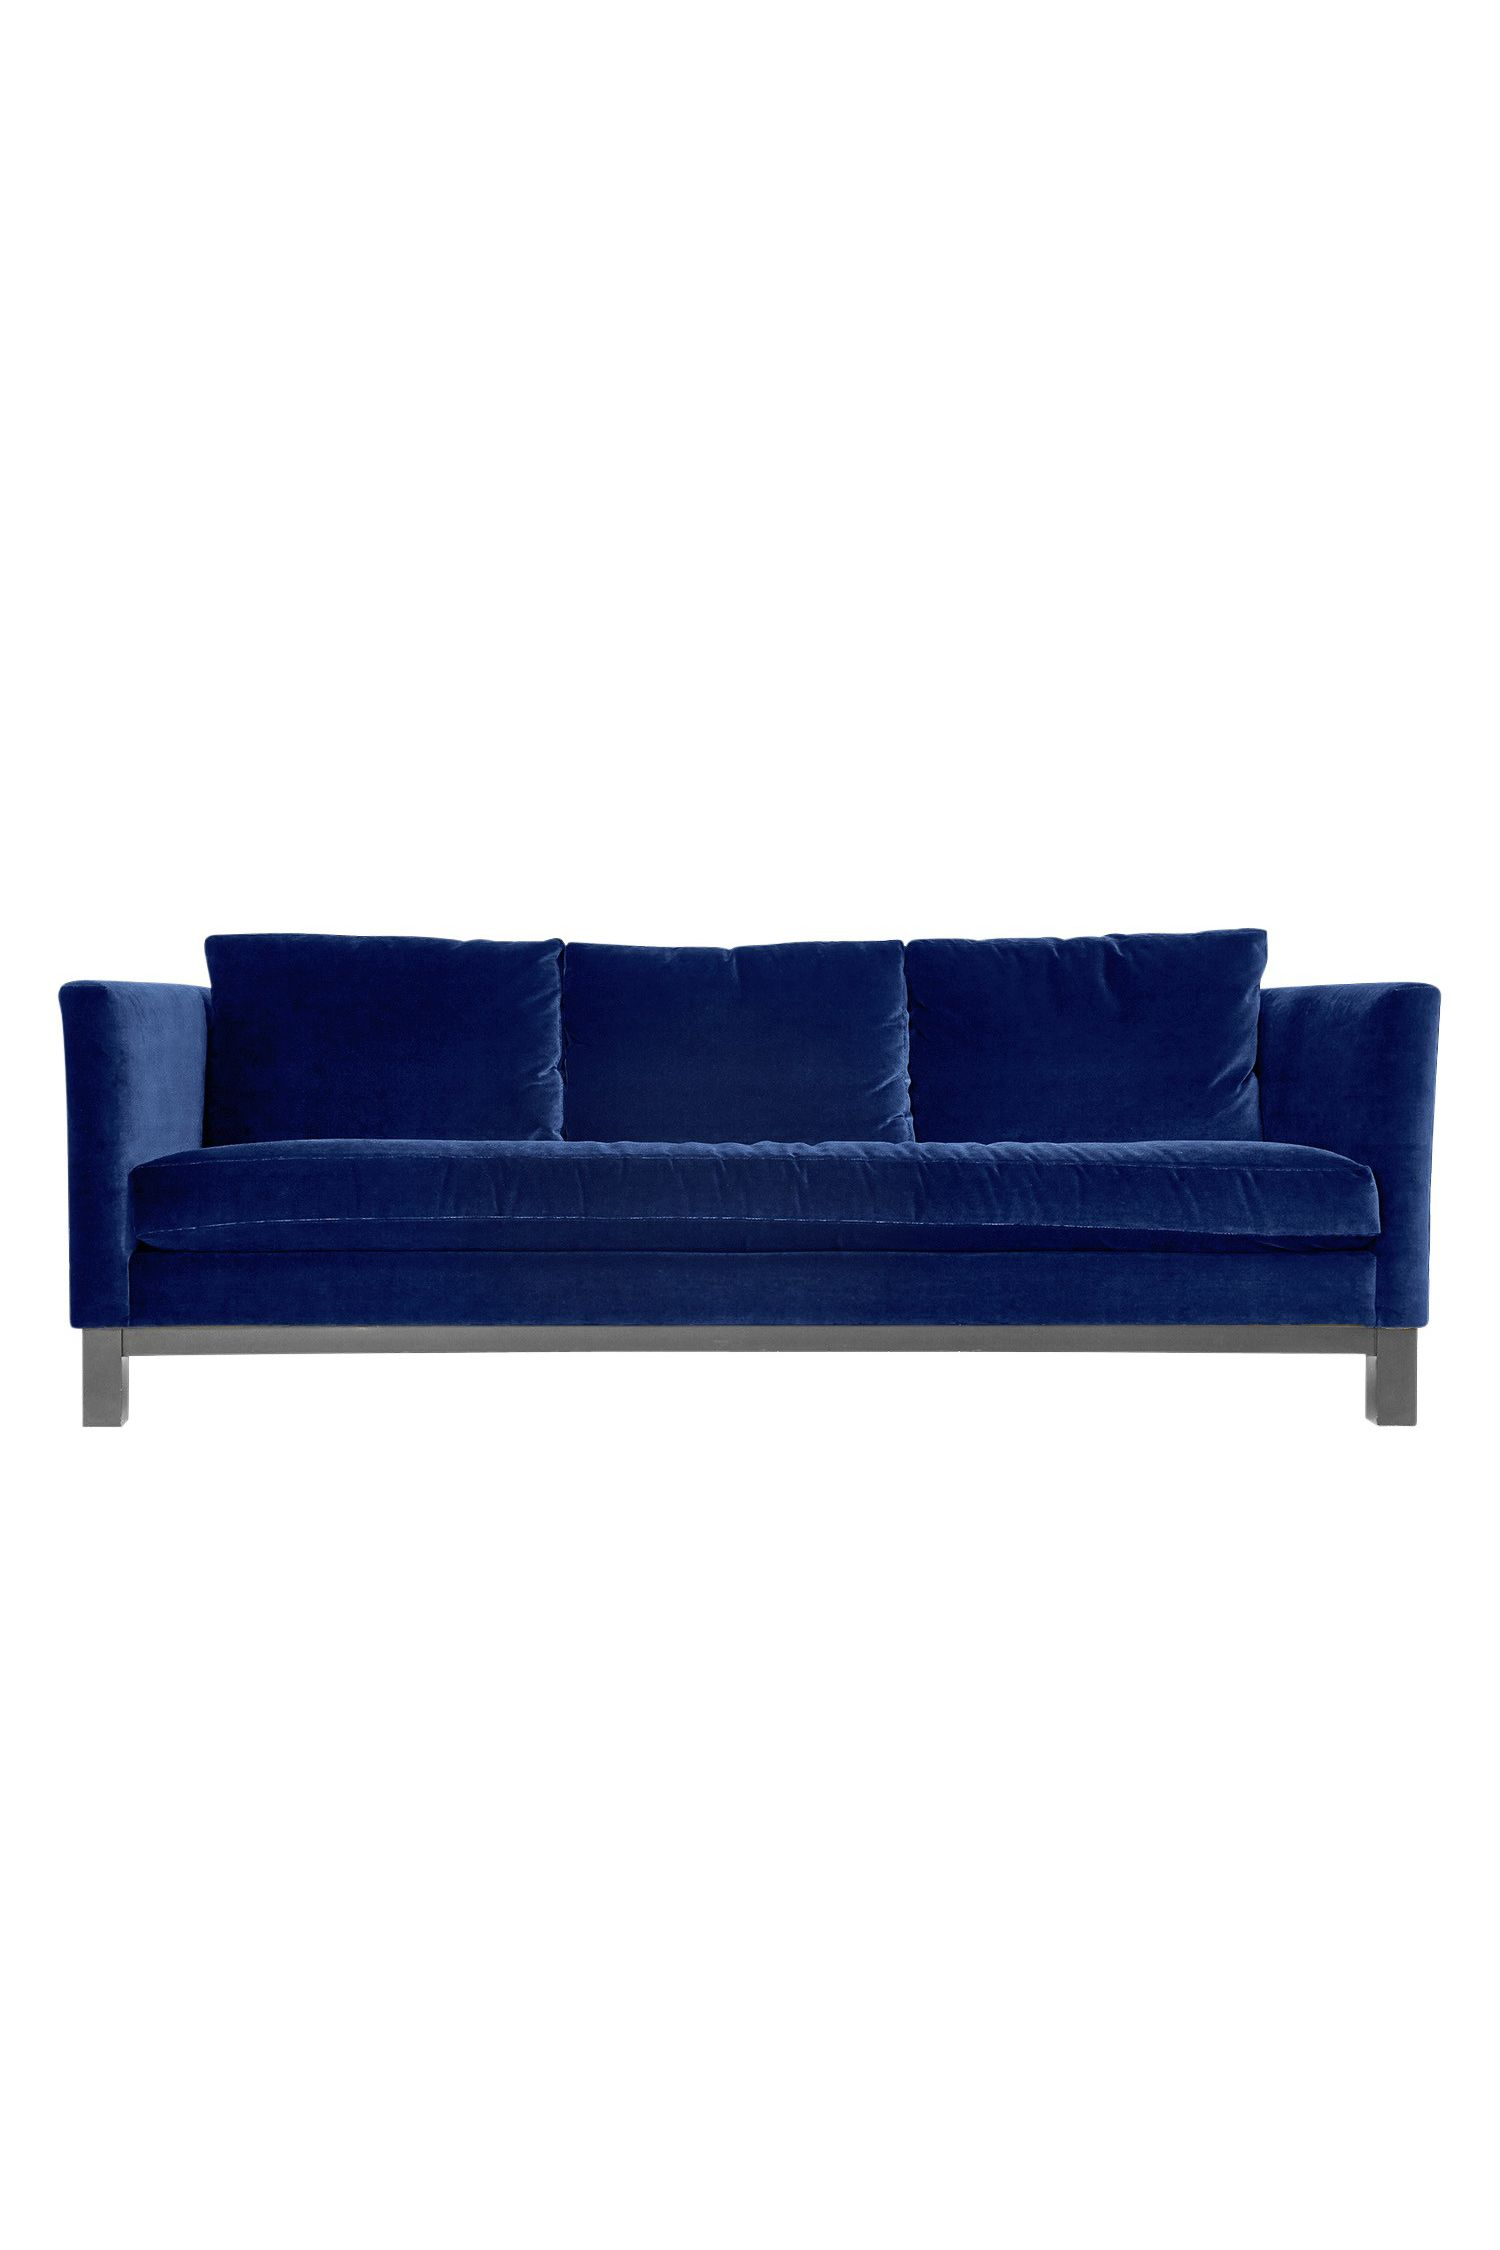 sofa beds reading berkshire sofas u love burbank 13 best cheap under 3000 top inexpensive couches